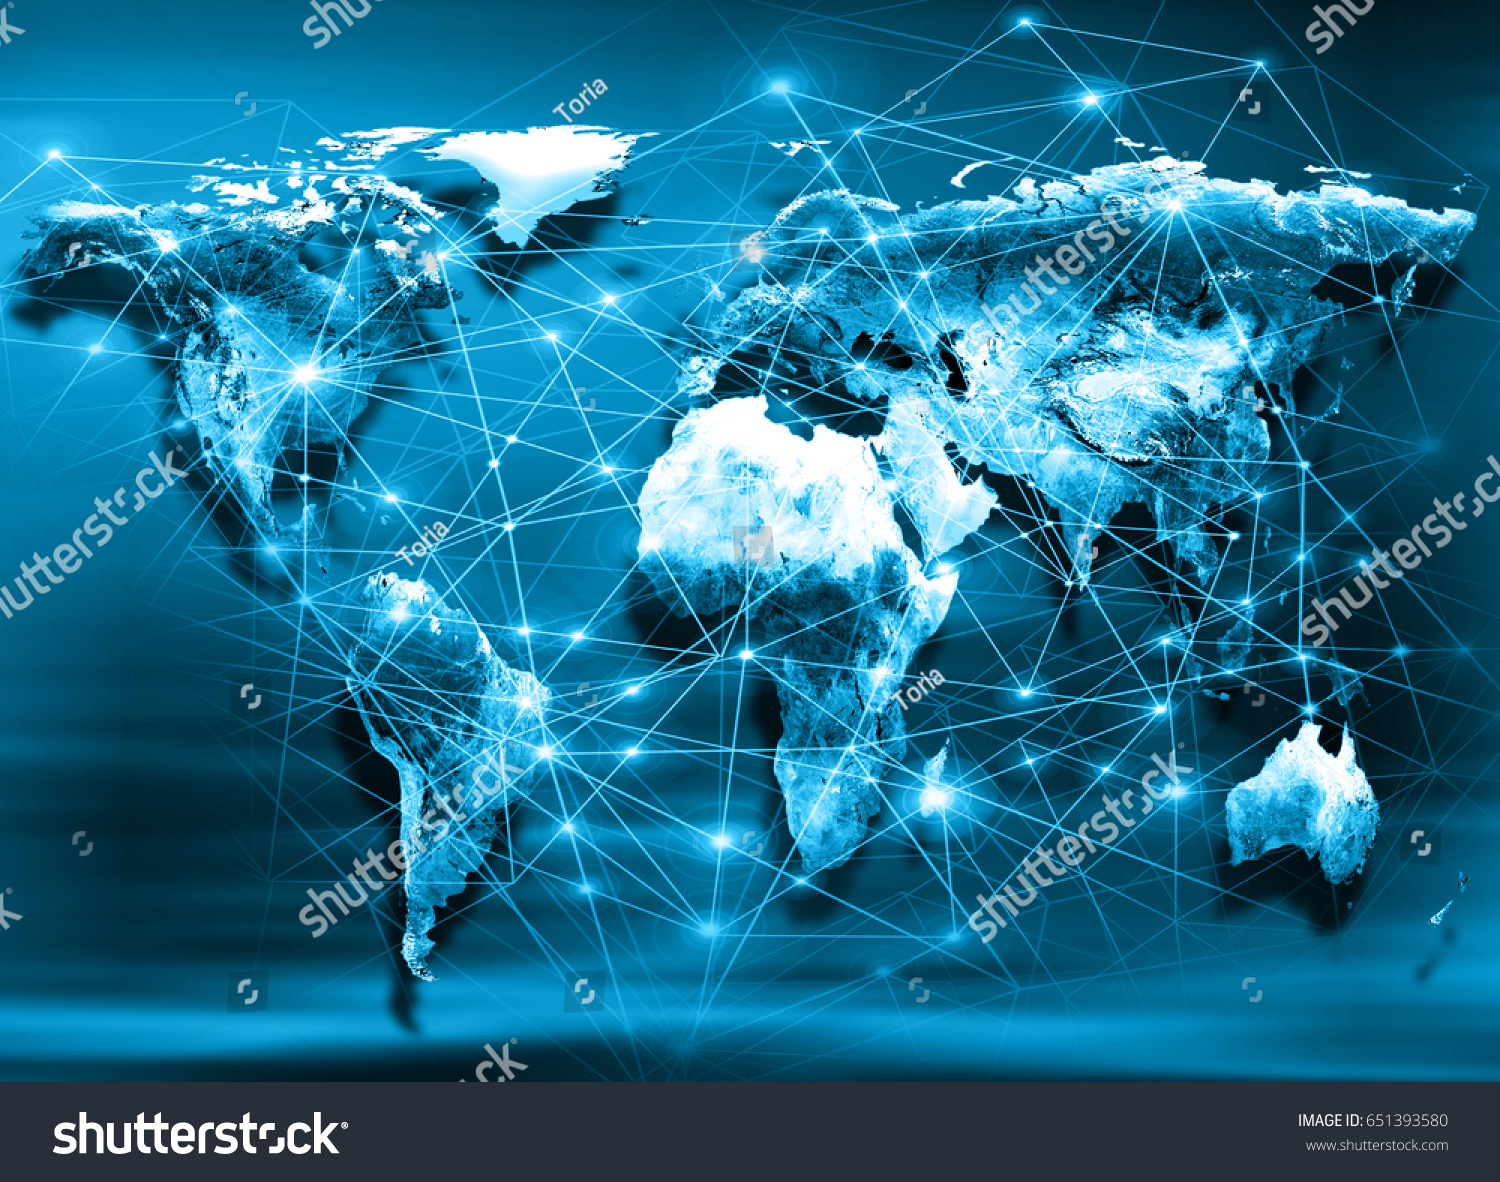 World map on technological background best stock illustration world map on a technological background best internet concept of global business elements of gumiabroncs Image collections